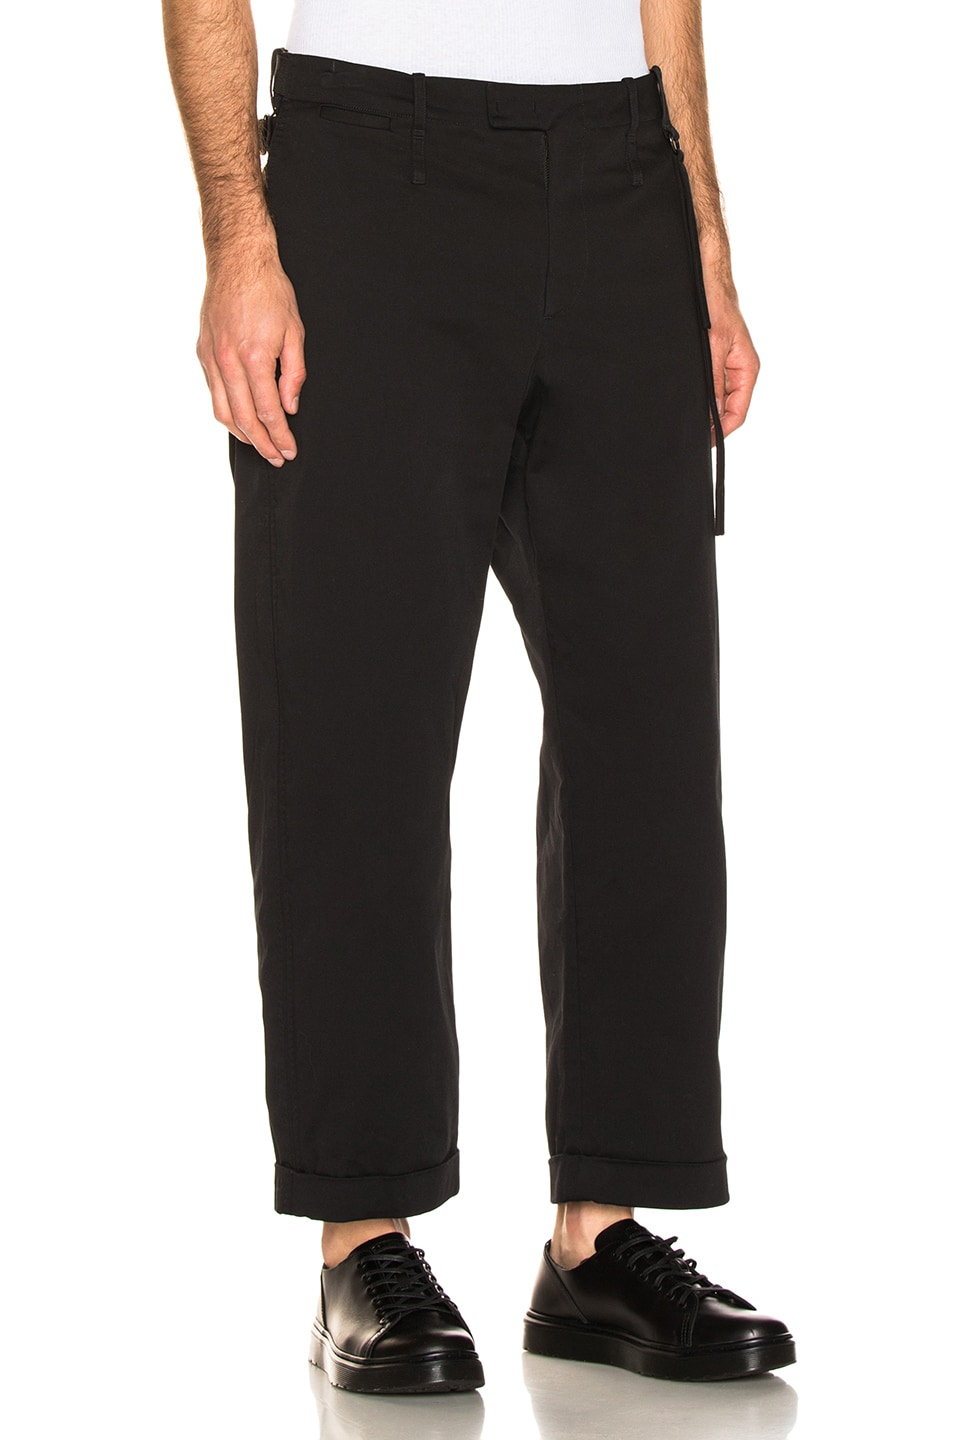 Image 2 of Craig Green Uniform Trouser in Black